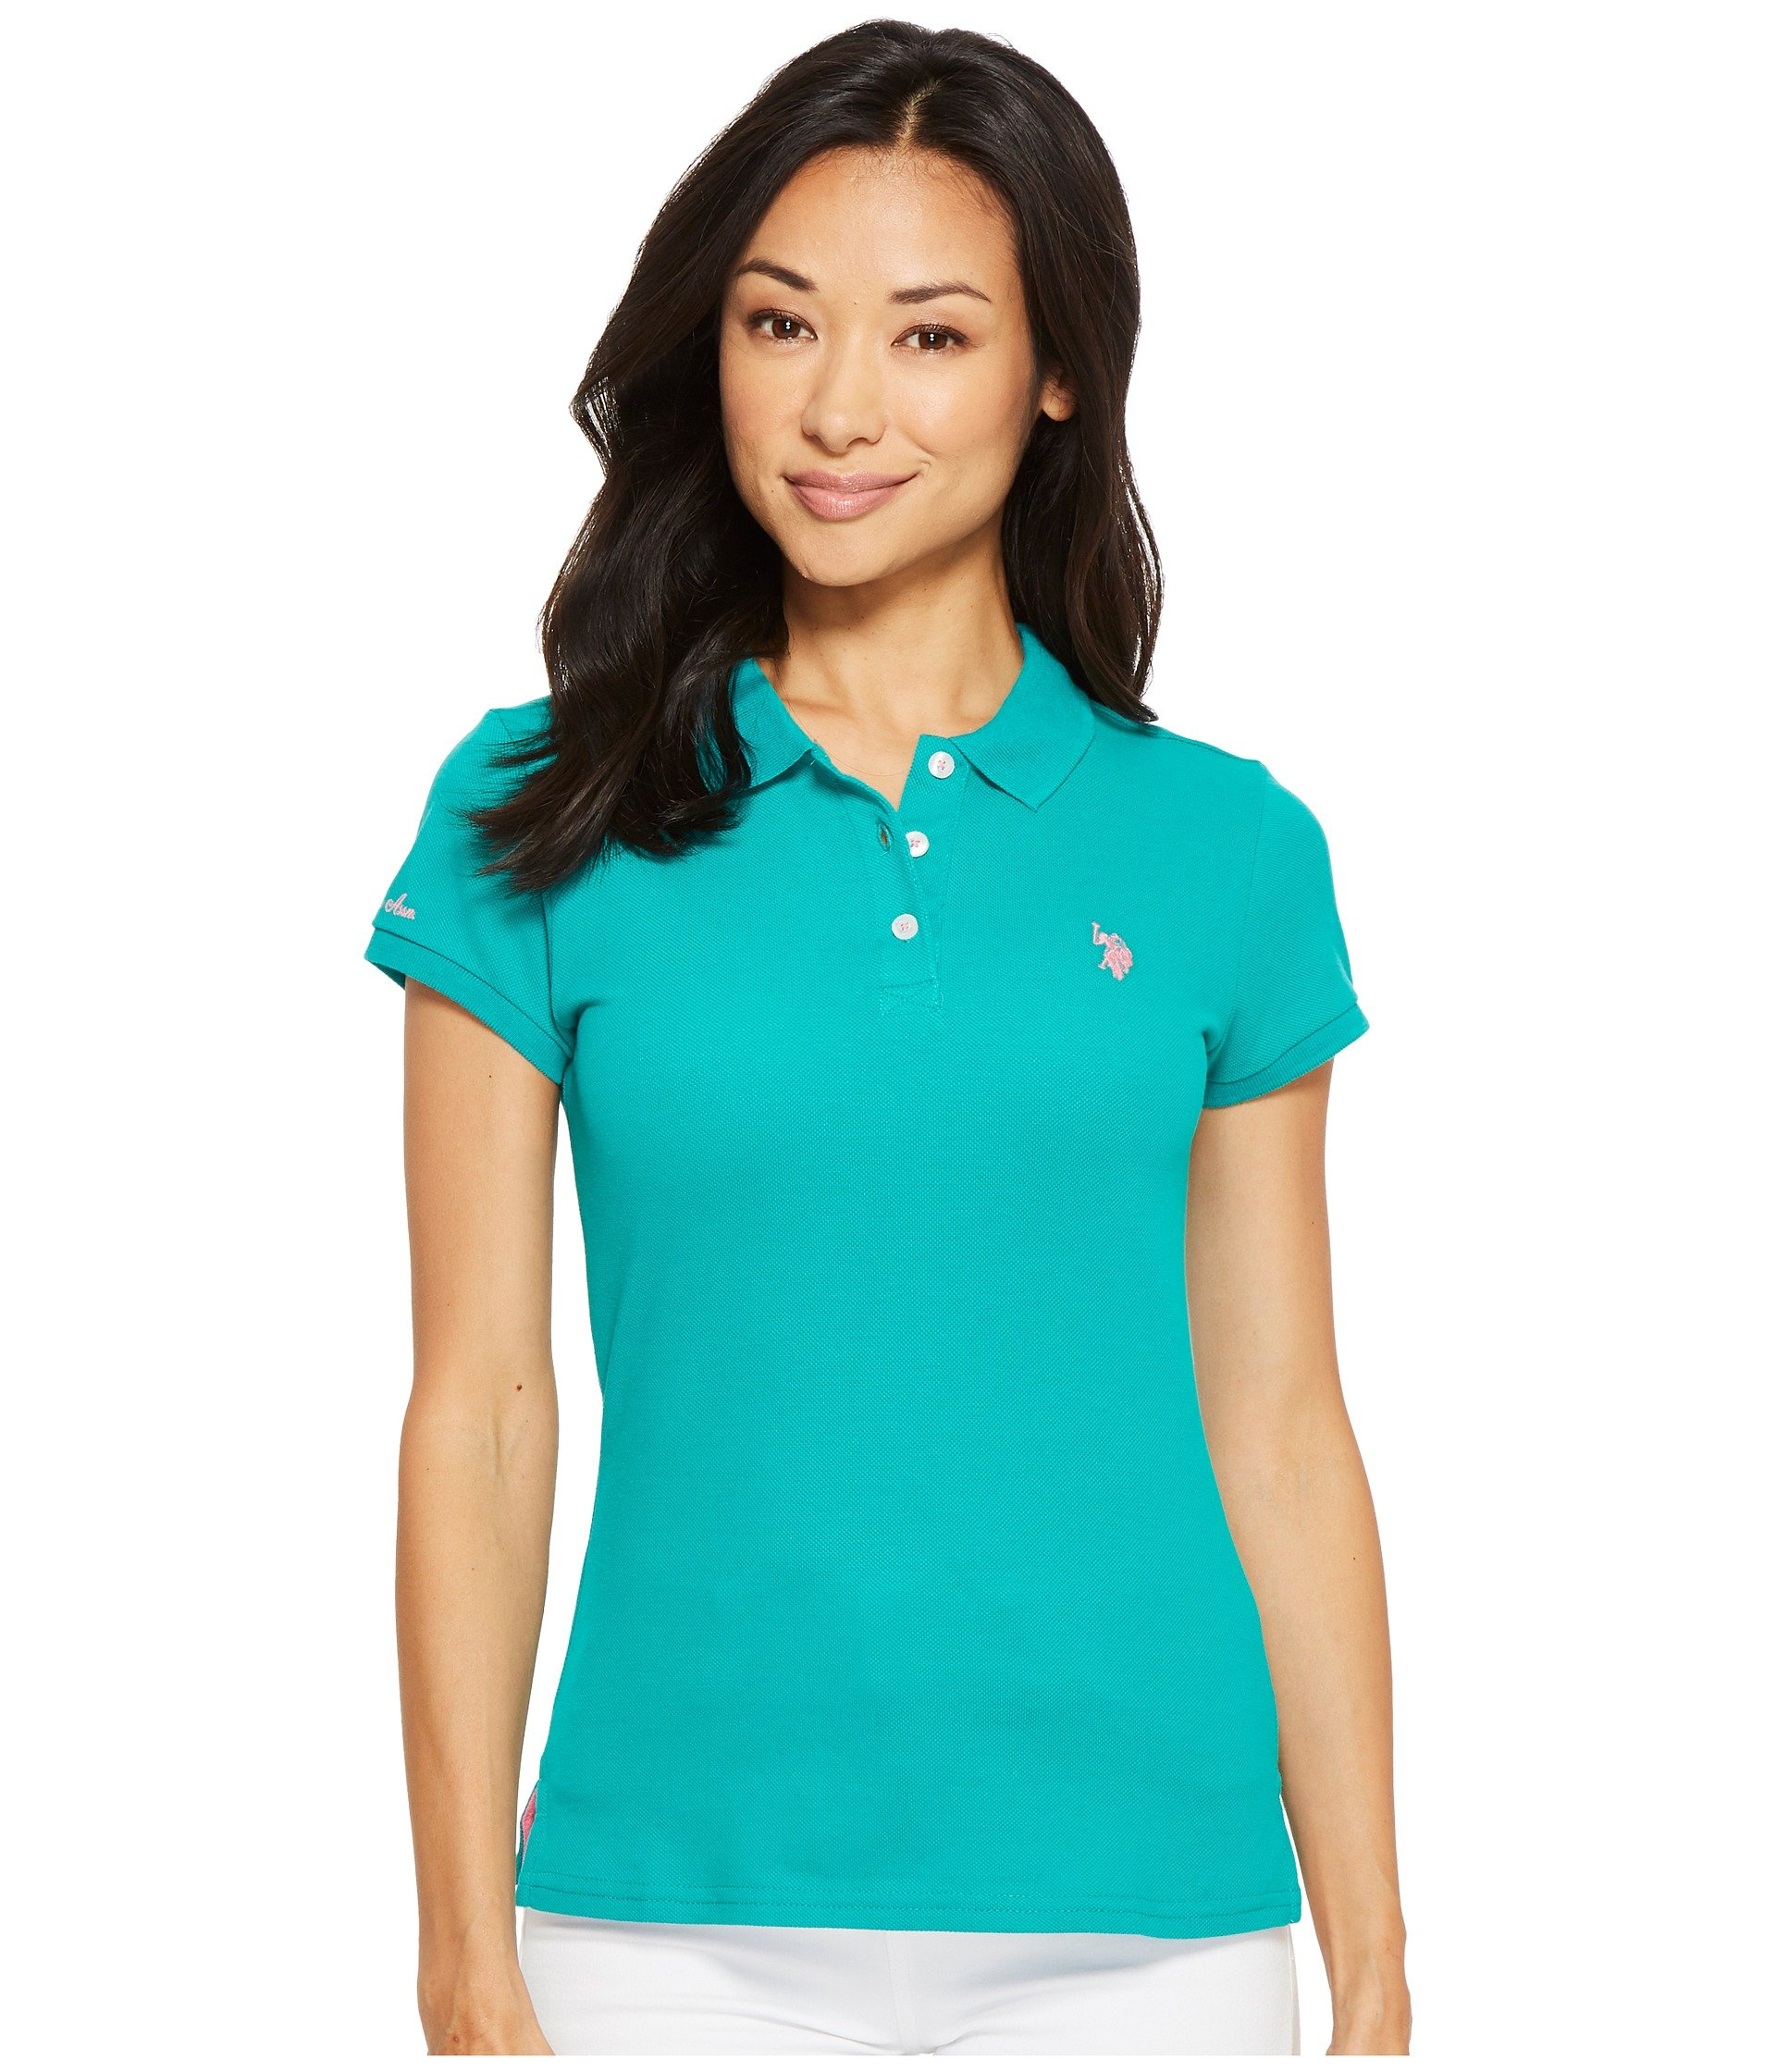 US Polo Assn Women's Solid Pique Shirt, Pappagallo Teal, M